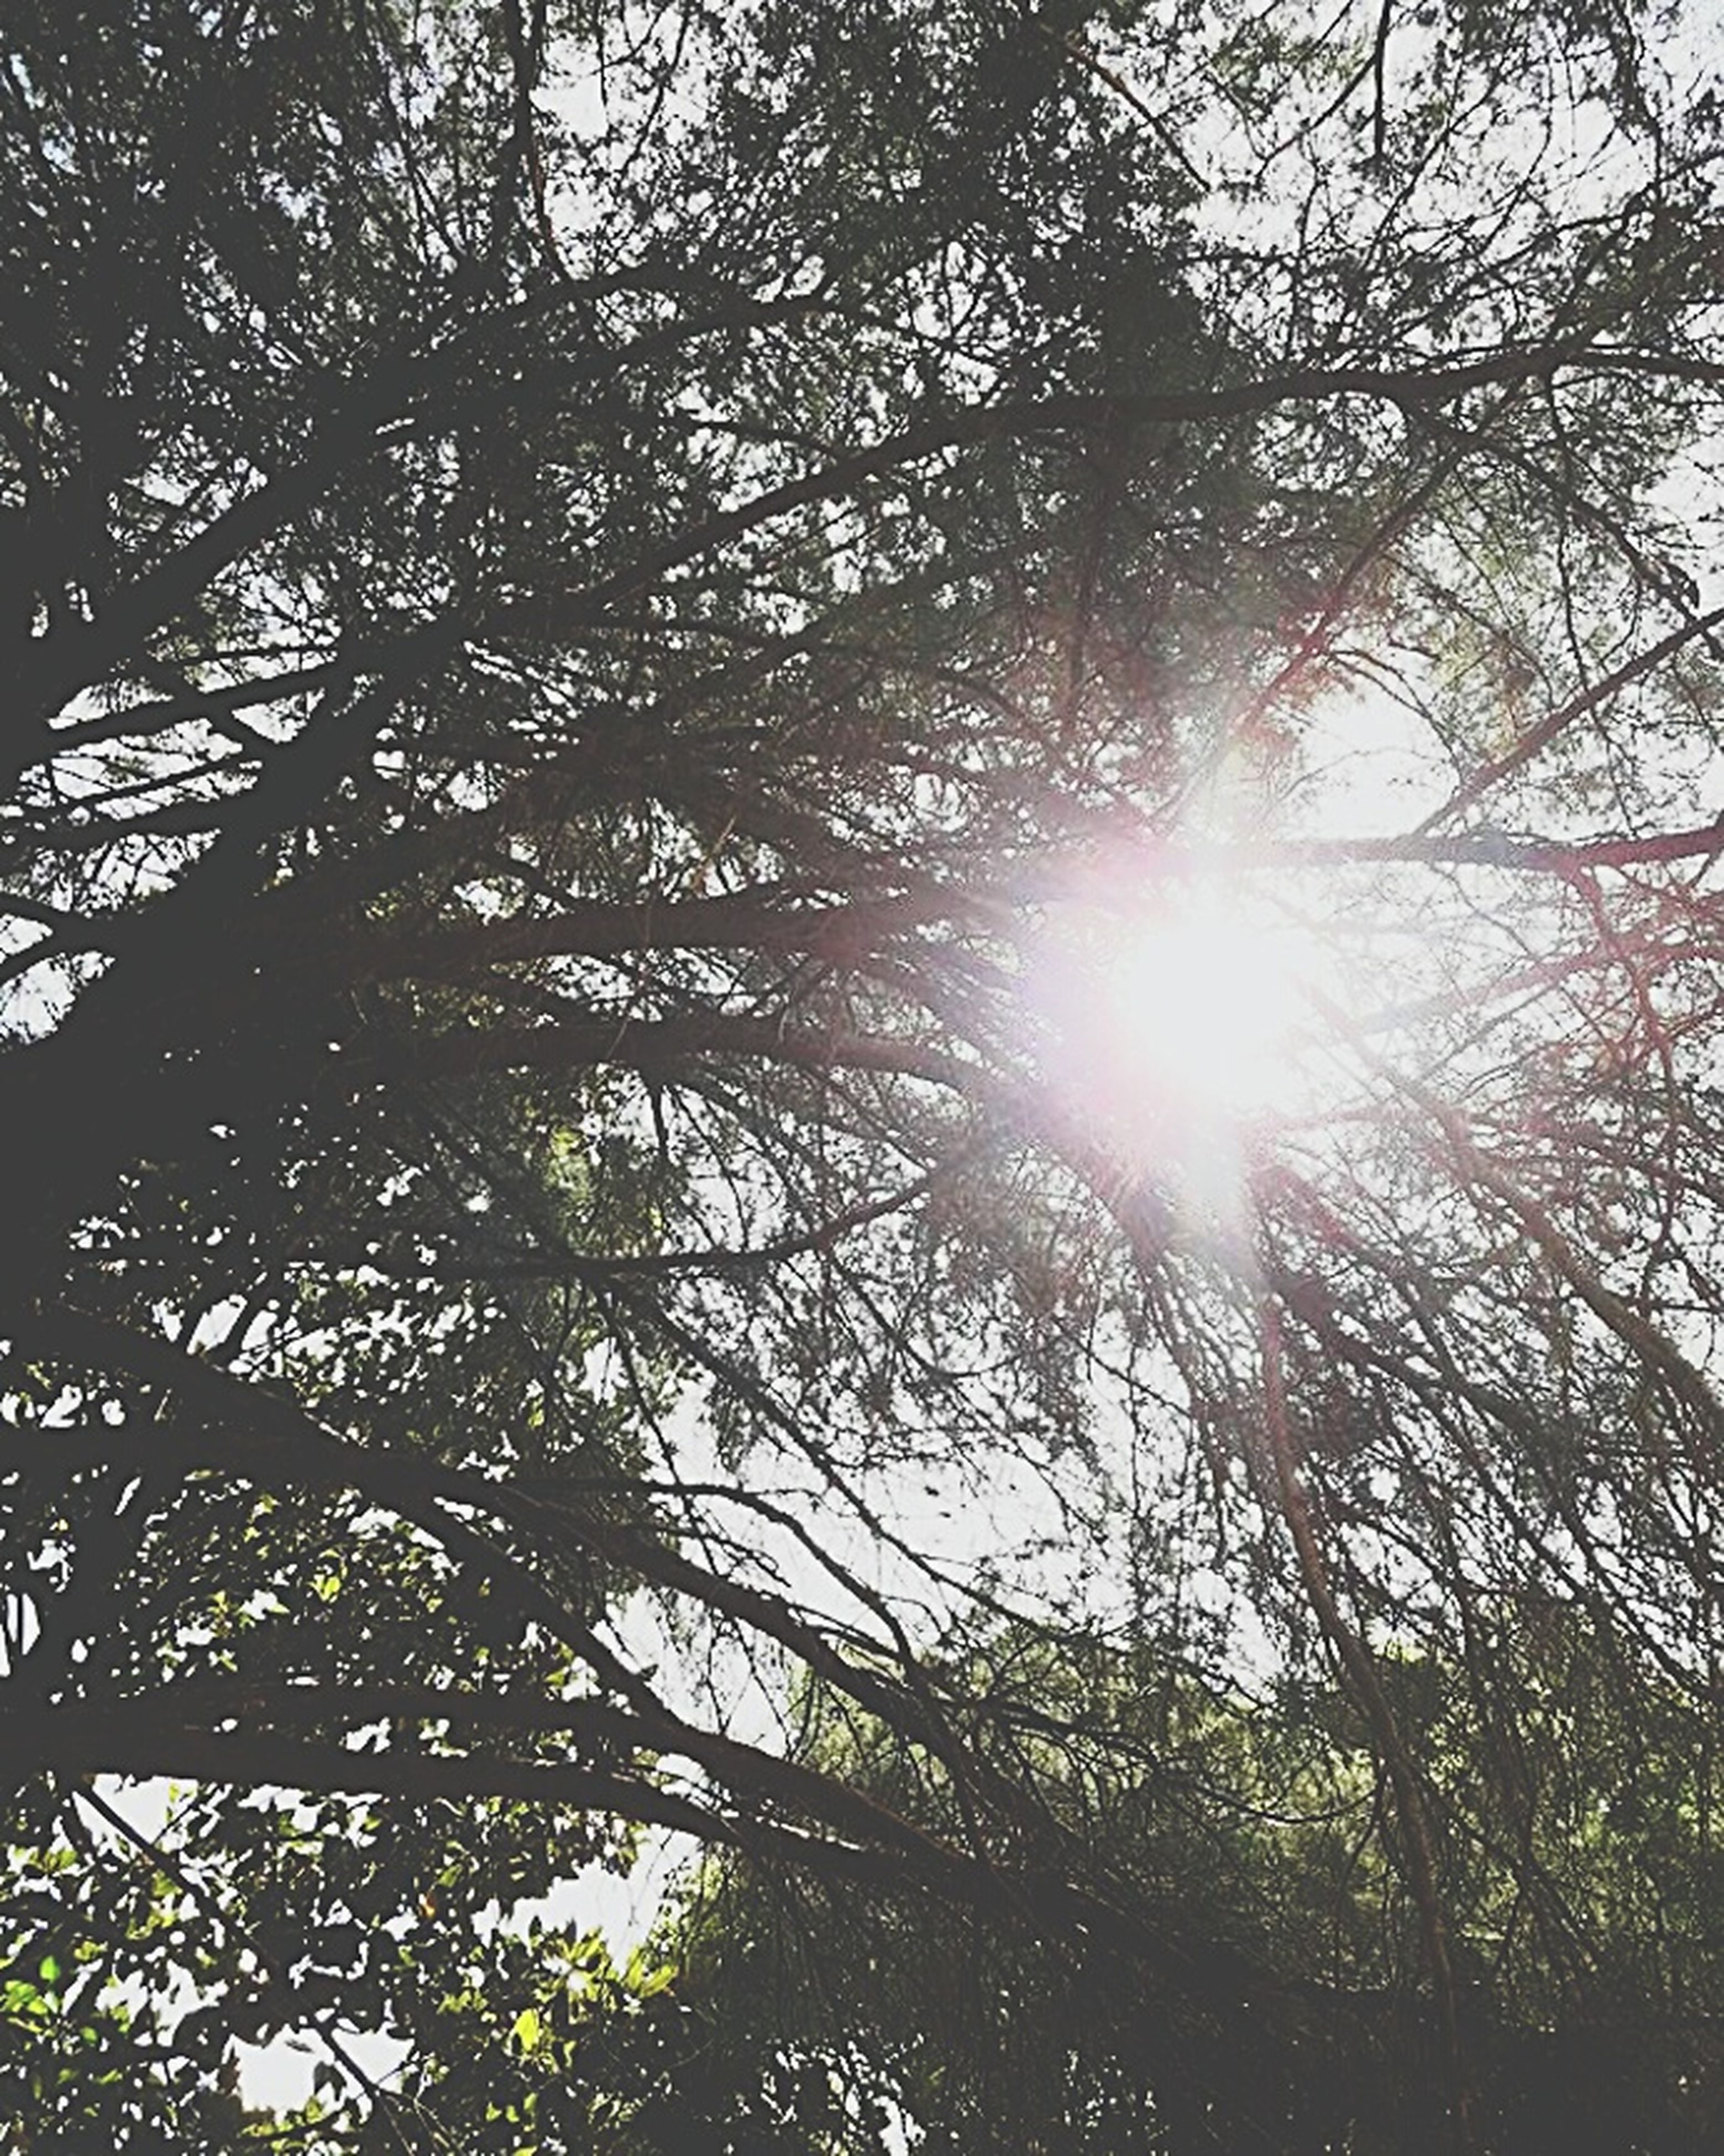 sunbeam, lens flare, tree, sunlight, low angle view, sun, nature, branch, day, bright, outdoors, no people, growth, forest, beauty in nature, brightly lit, tranquility, sky